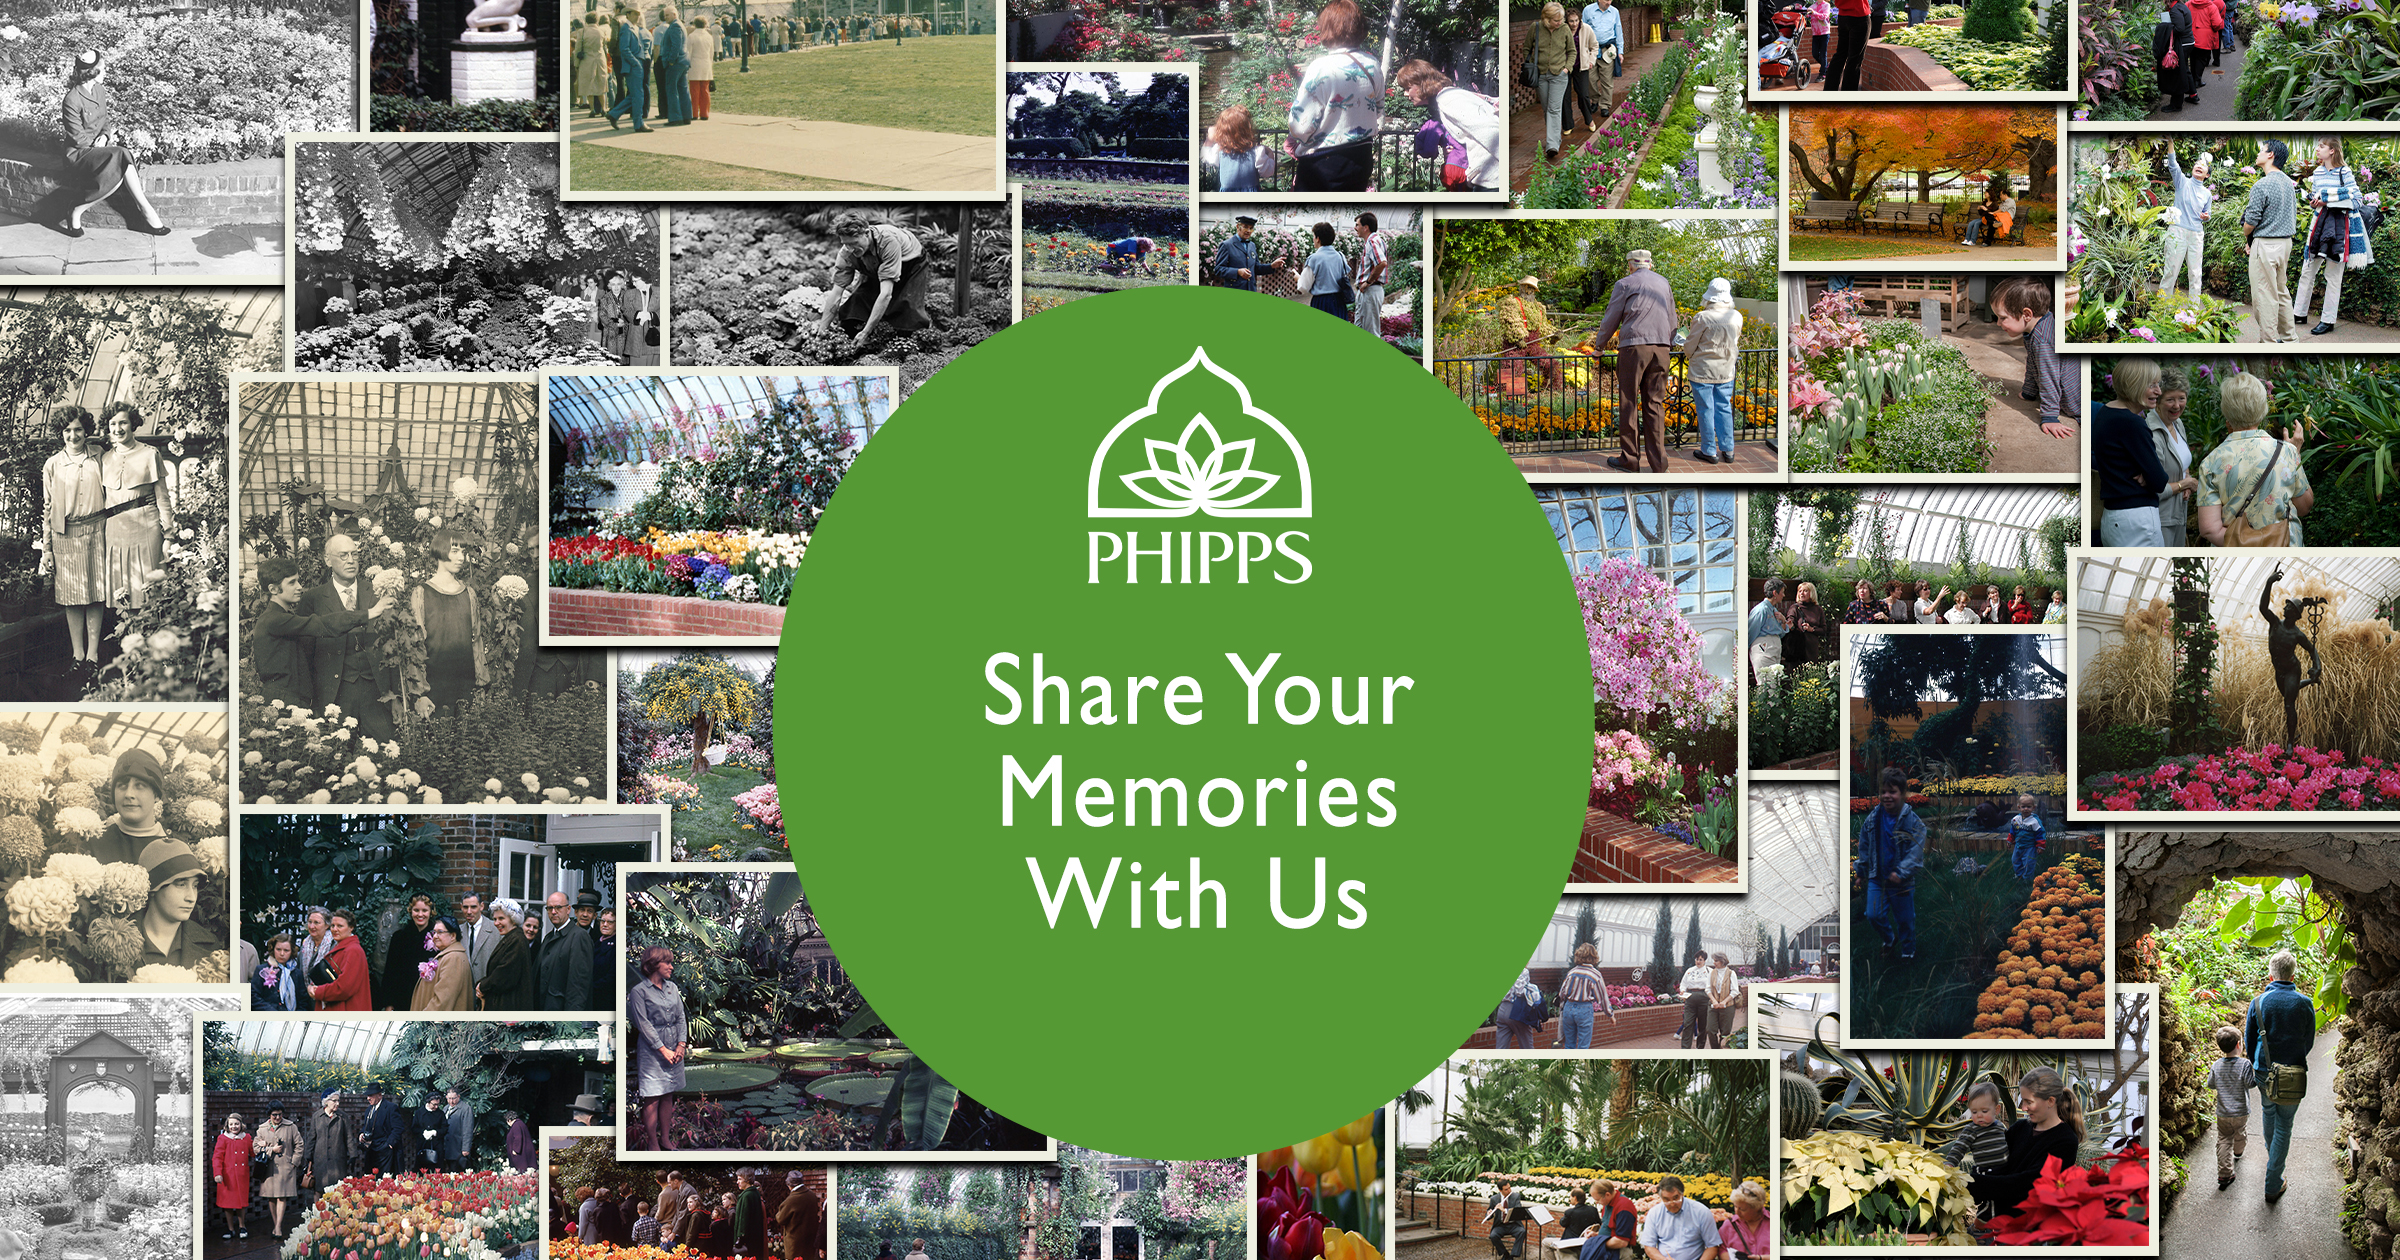 Share Your Memories With Us